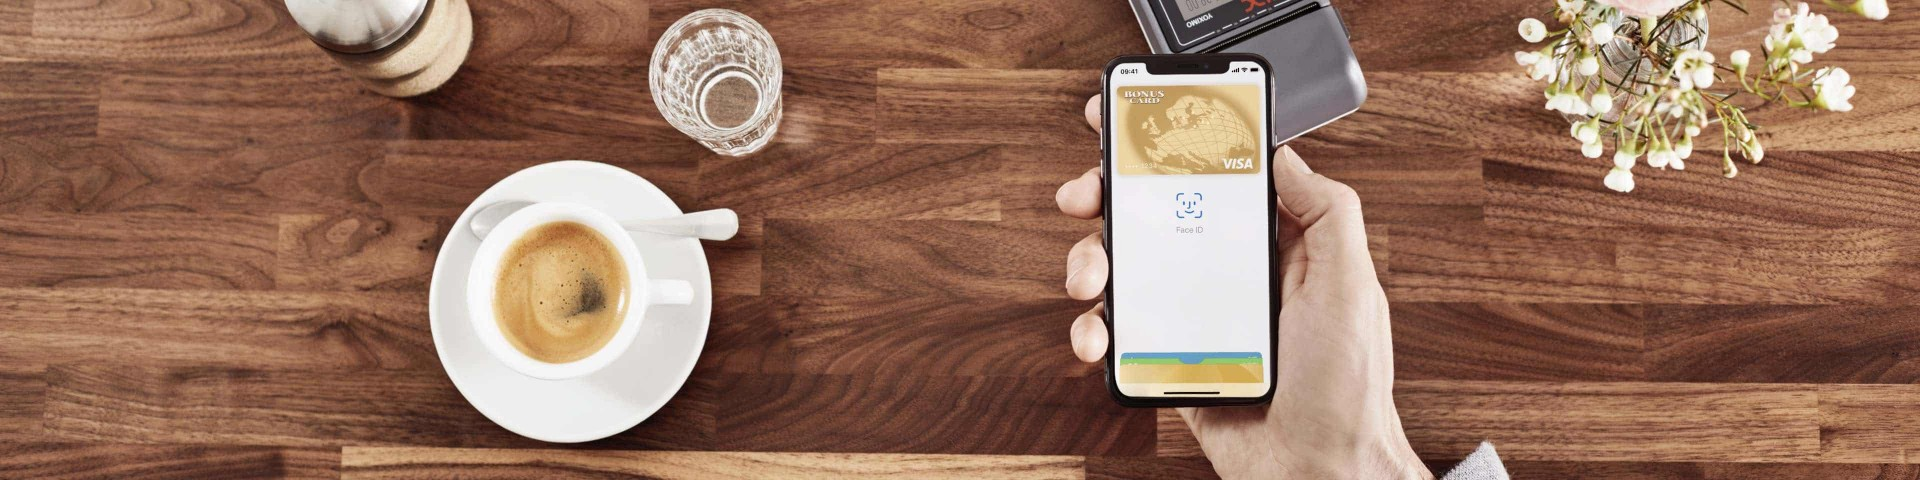 Apple Pay Coffee Shop Payment